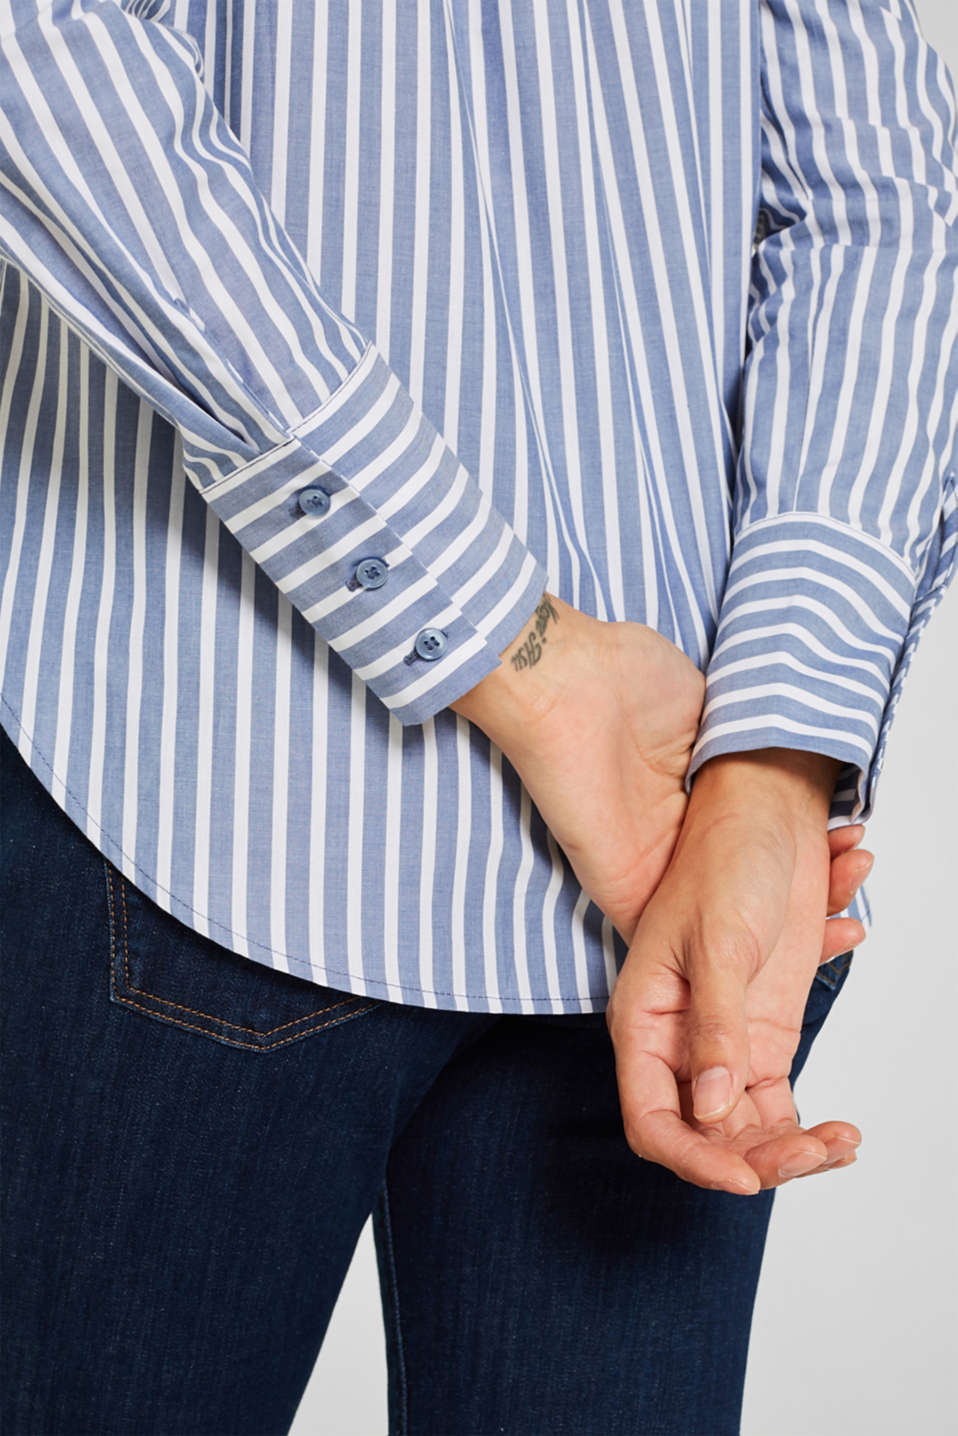 Blouse with stripes, 100% cotton, BLUE, detail image number 2